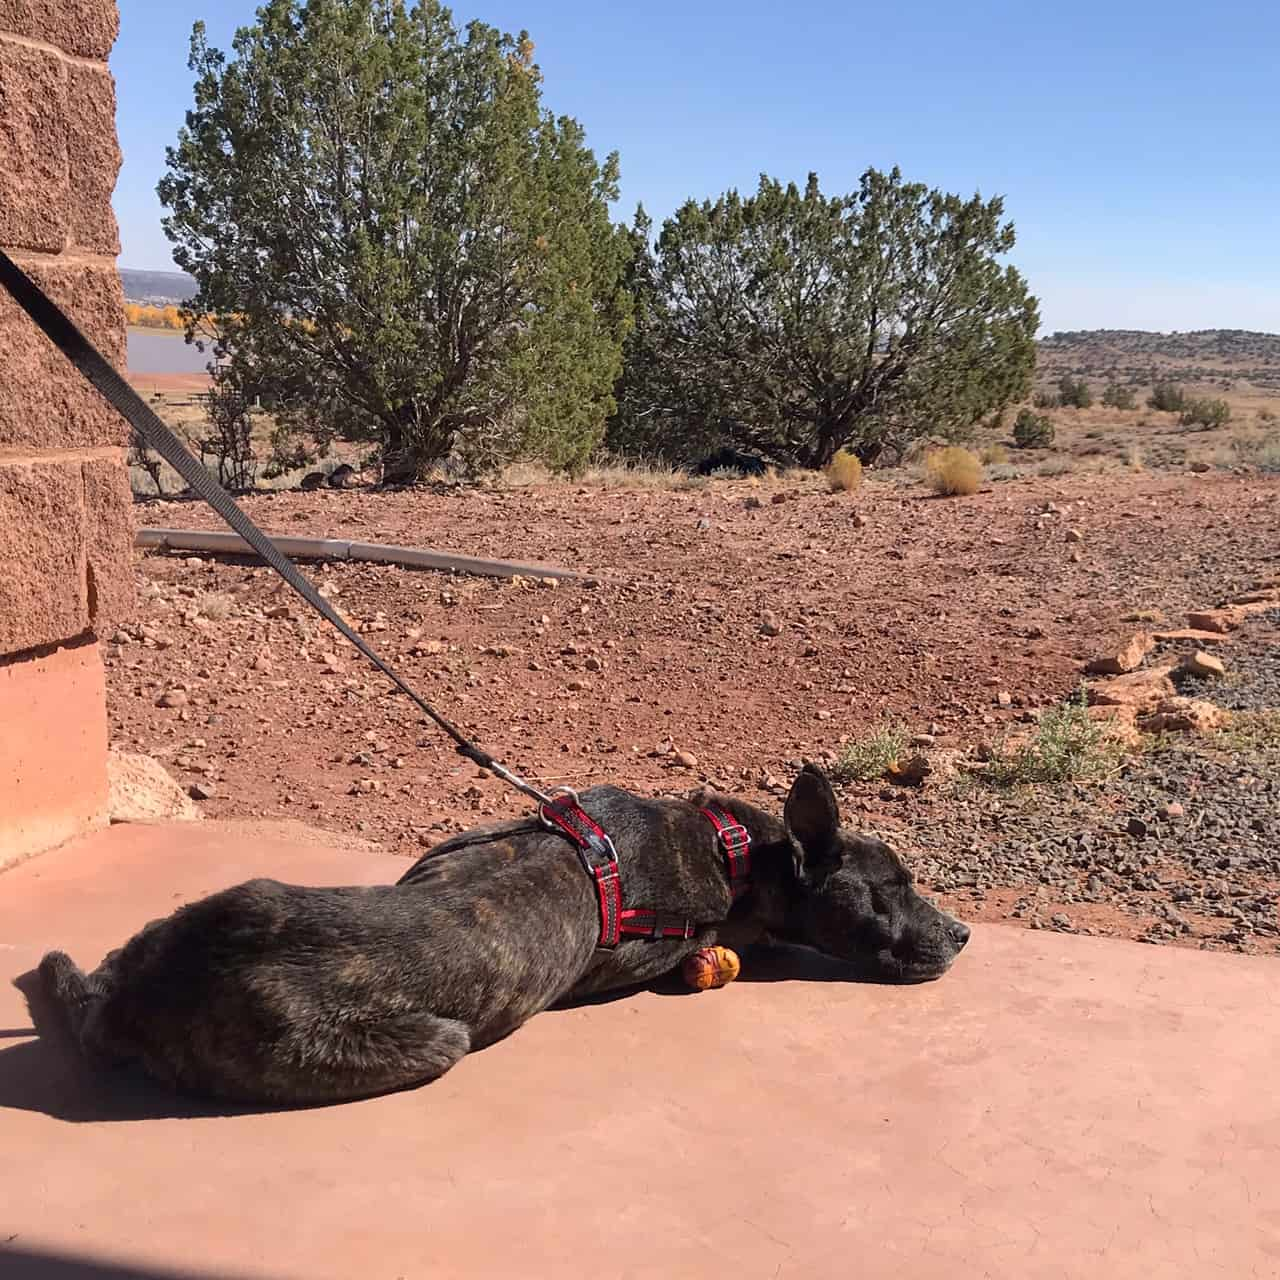 Brindle dog laying in the sun while camping in Arizona